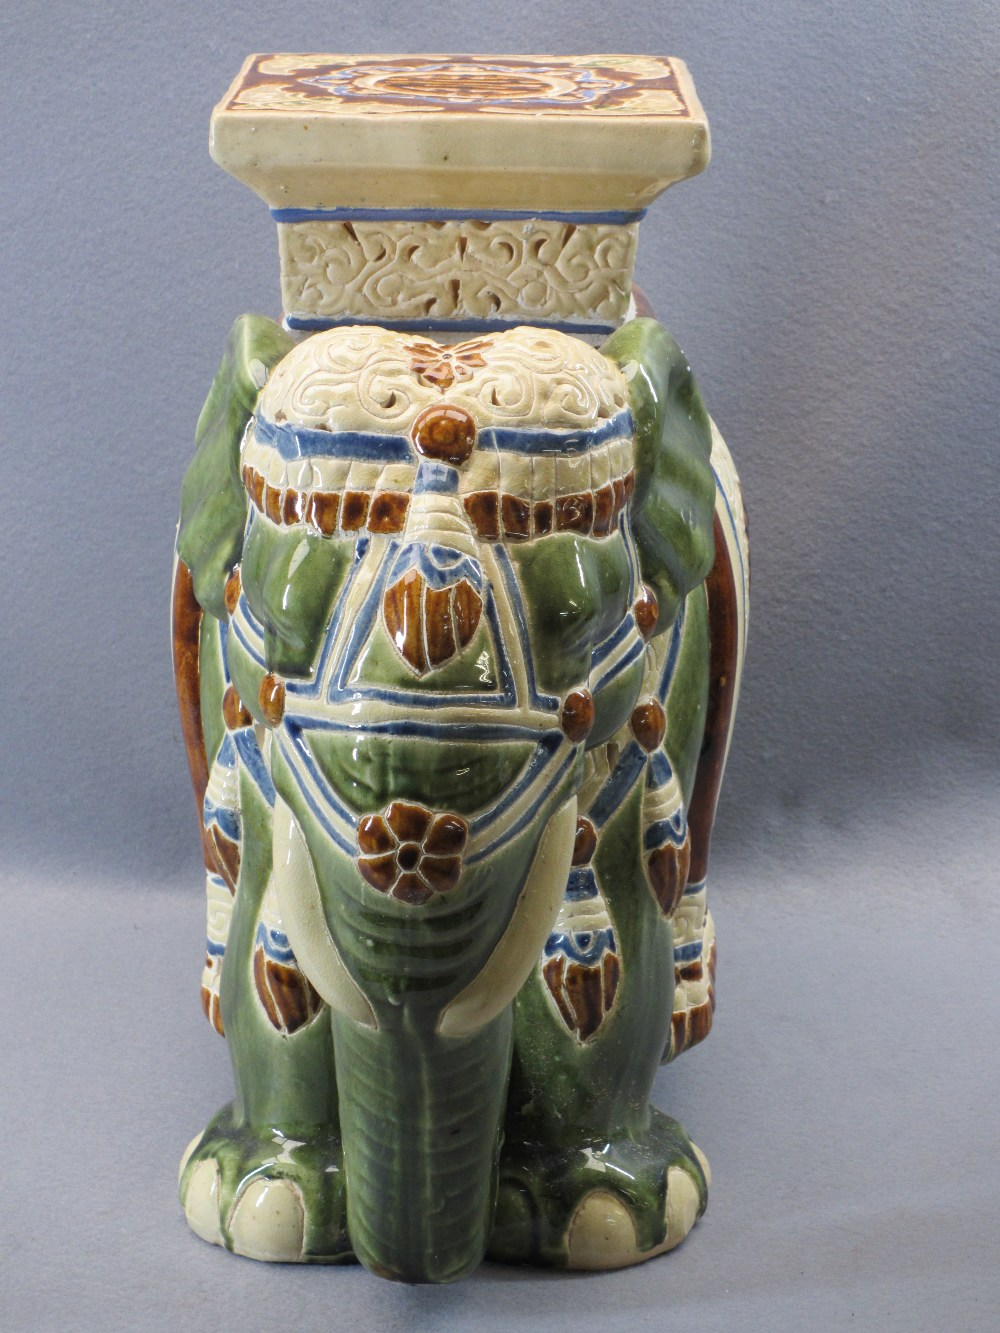 CHINESE POTTERY ELEPHANT GARDEN SEAT - 43.5cms H, 46cms L - Image 2 of 5